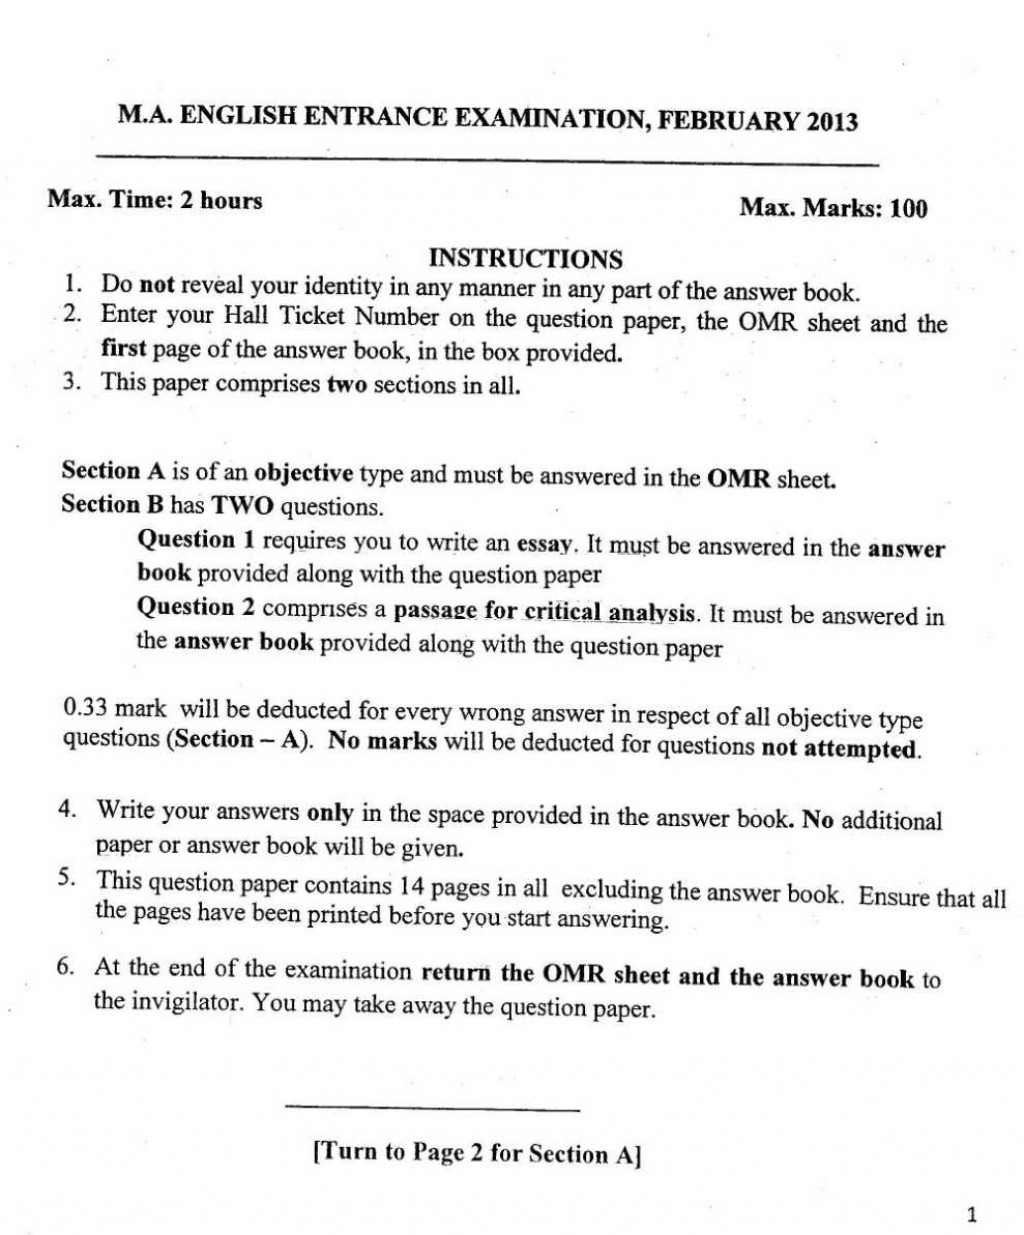 002 What Does Essay Mean In Spanish Help Buy Original How To Pick Good Up Definition Writing Tools Software Previous Year Question Papers Of Ma English Entrance Exam University Hyd Online Marvelous El Large